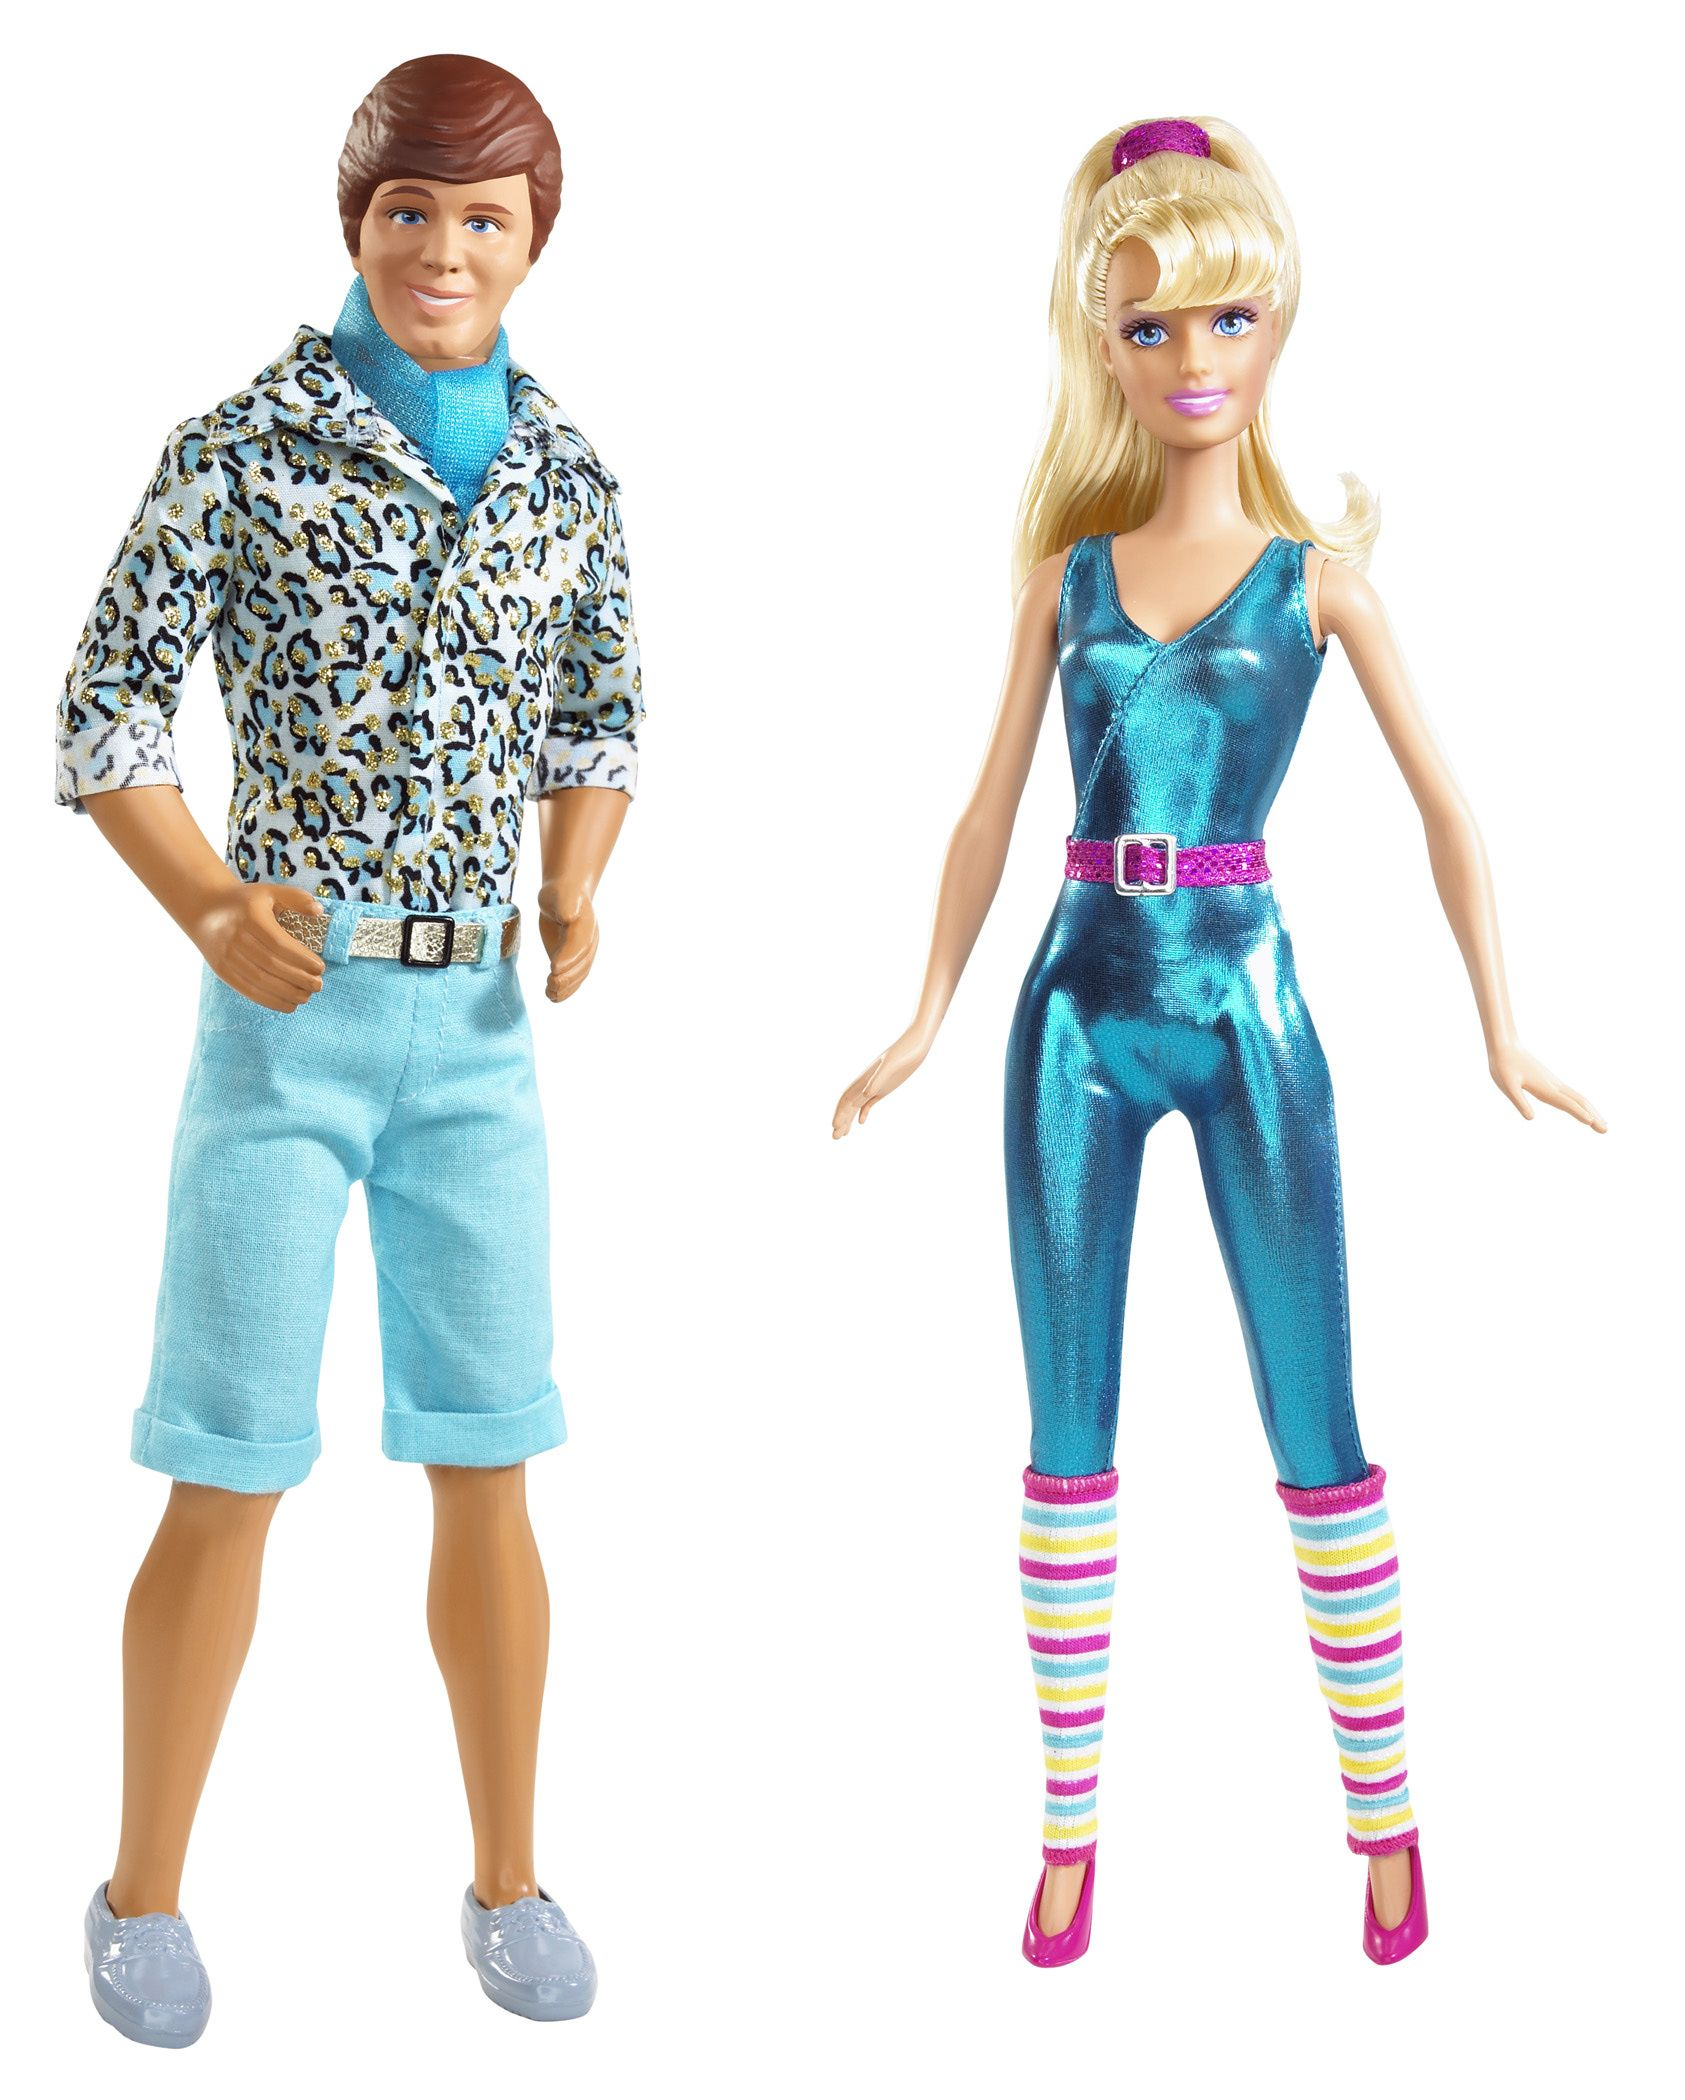 Barbie\'s From the 80s | Toy Story 3 Barbie and Ken - "|1685|2100|?|01fb3ab90a0987a4f1746bfd9e98d165|False|UNLIKELY|0.37410157918930054